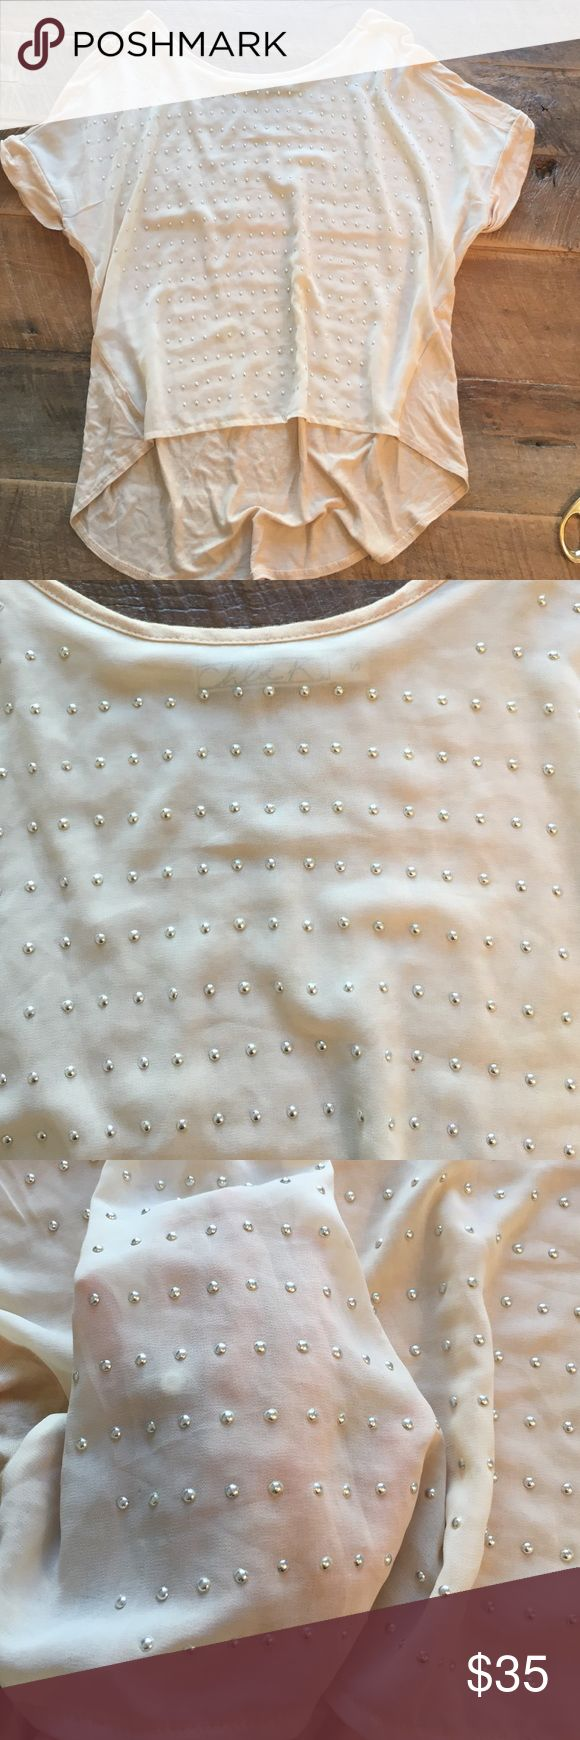 🆕 Beautiful Chloe K Neutral Shirt Beautiful fit. Front is sheer. Only worn twice. From Nordstrom. Chloe K Tops Blouses